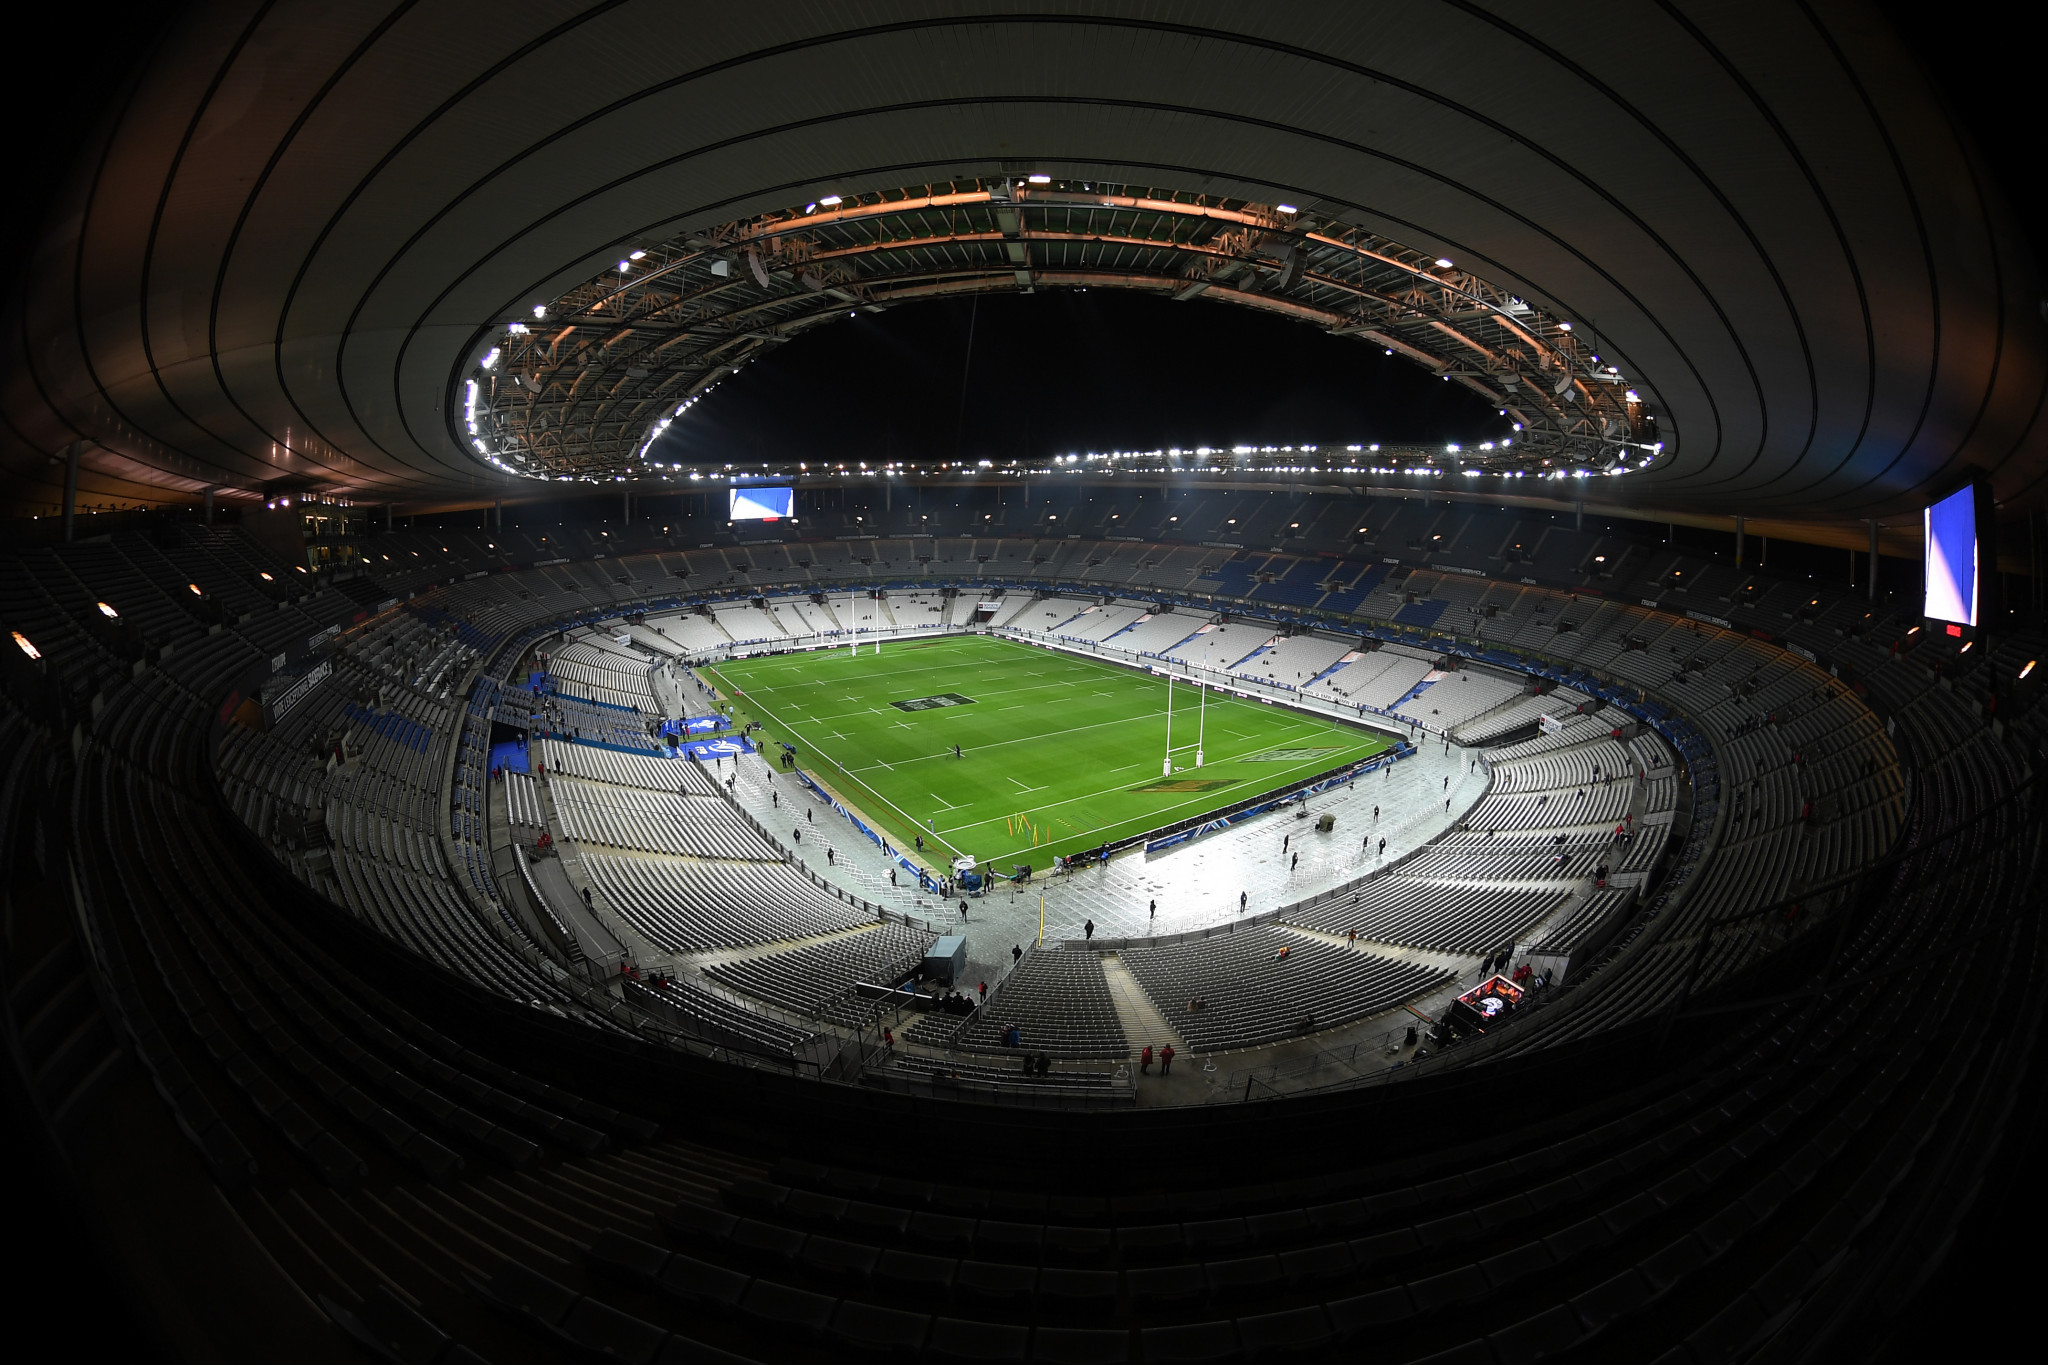 The central Paris 2024 venue, the Stade de France, is located in Seine-Saint-Denis ©Getty Images